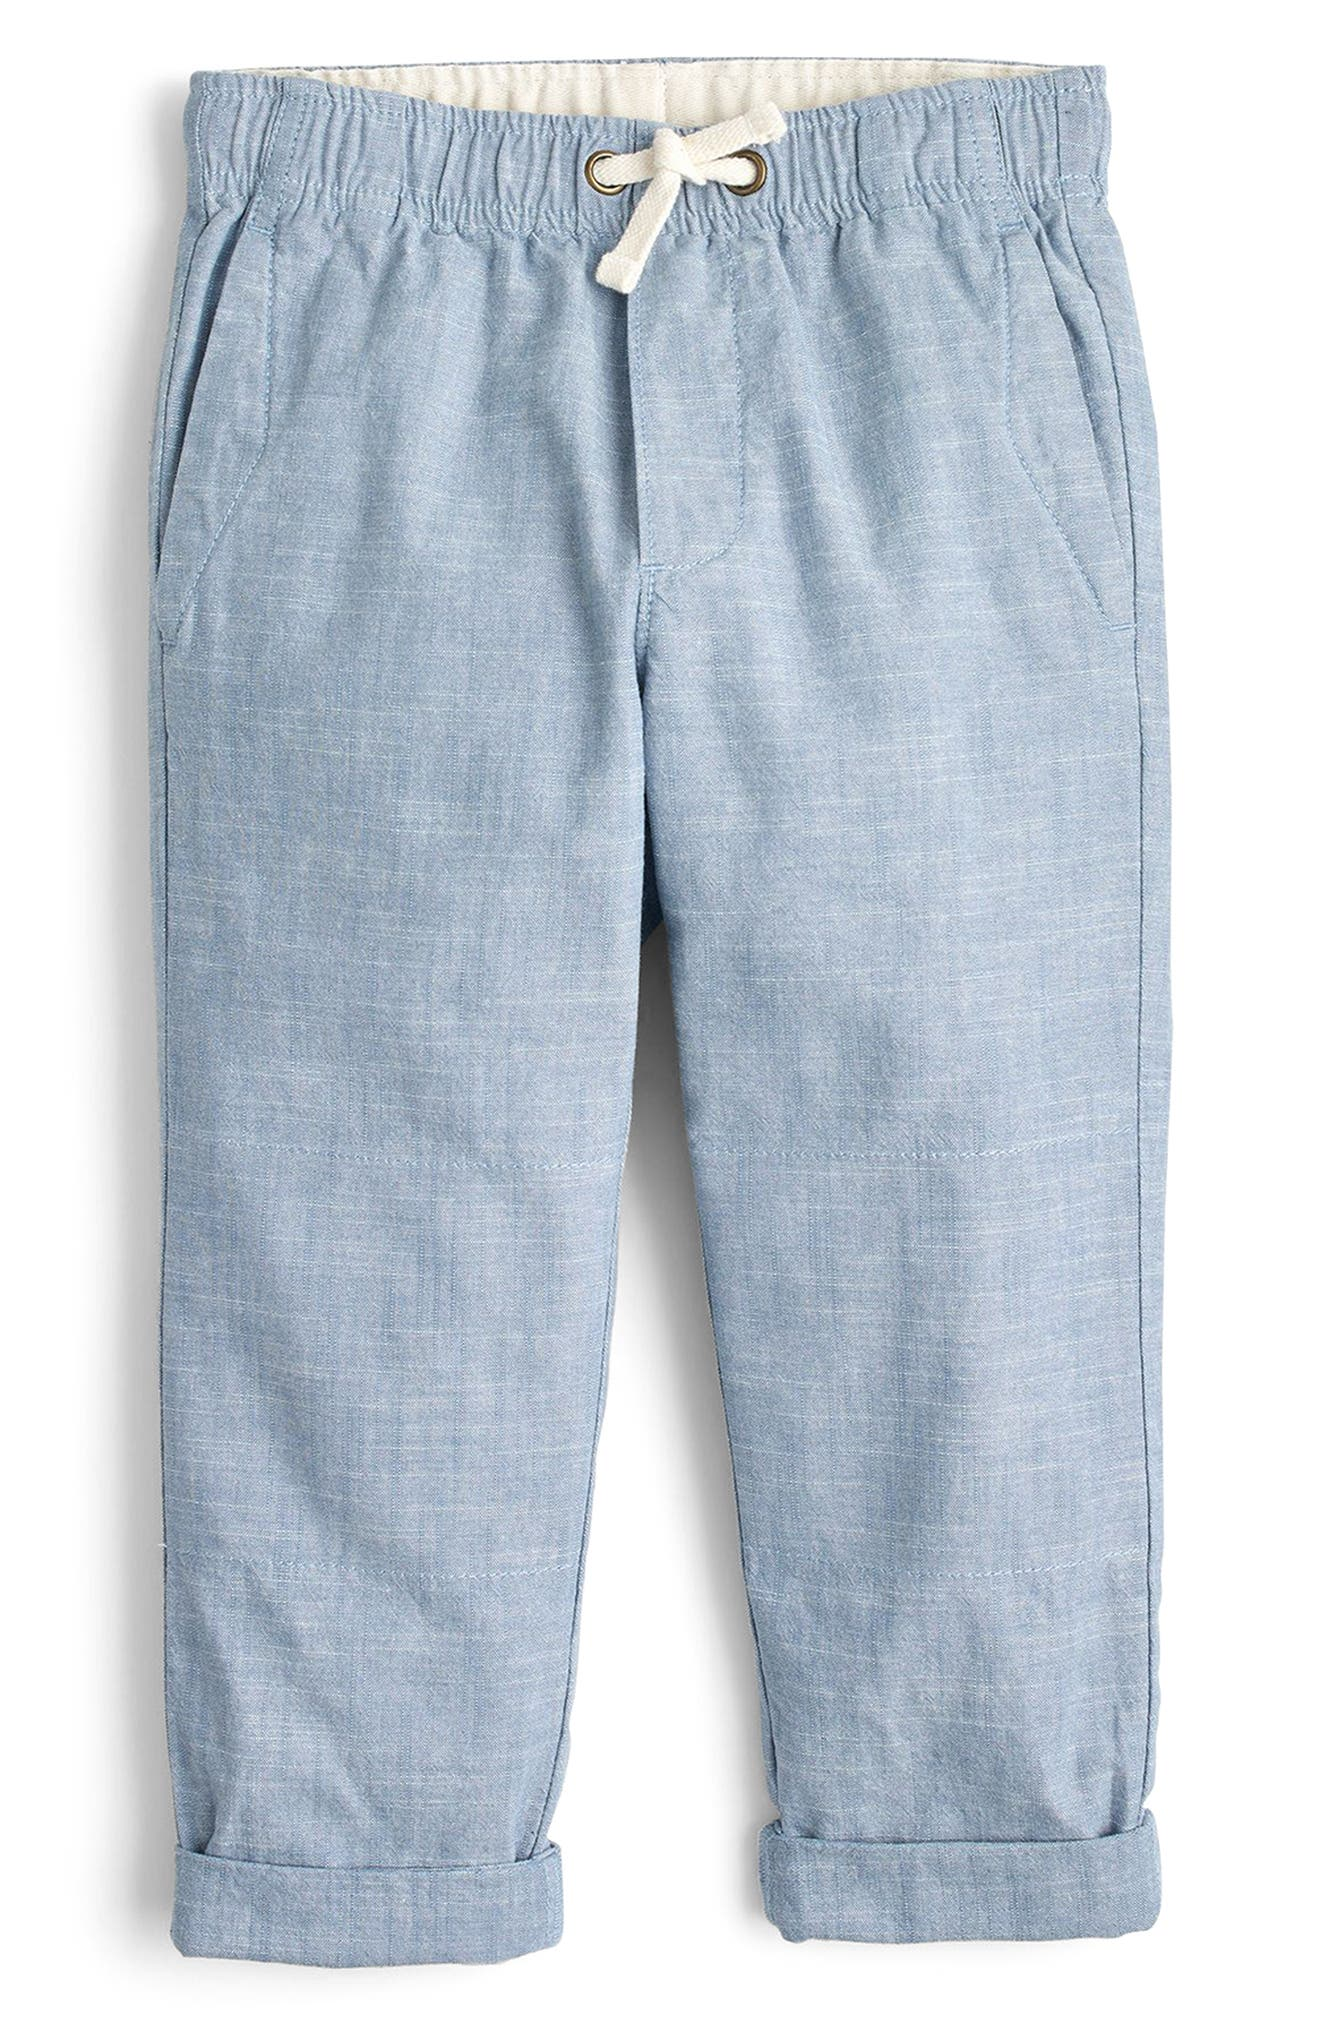 Chambray Reinforced Knee Pull-On Pants,                         Main,                         color, Lakeview